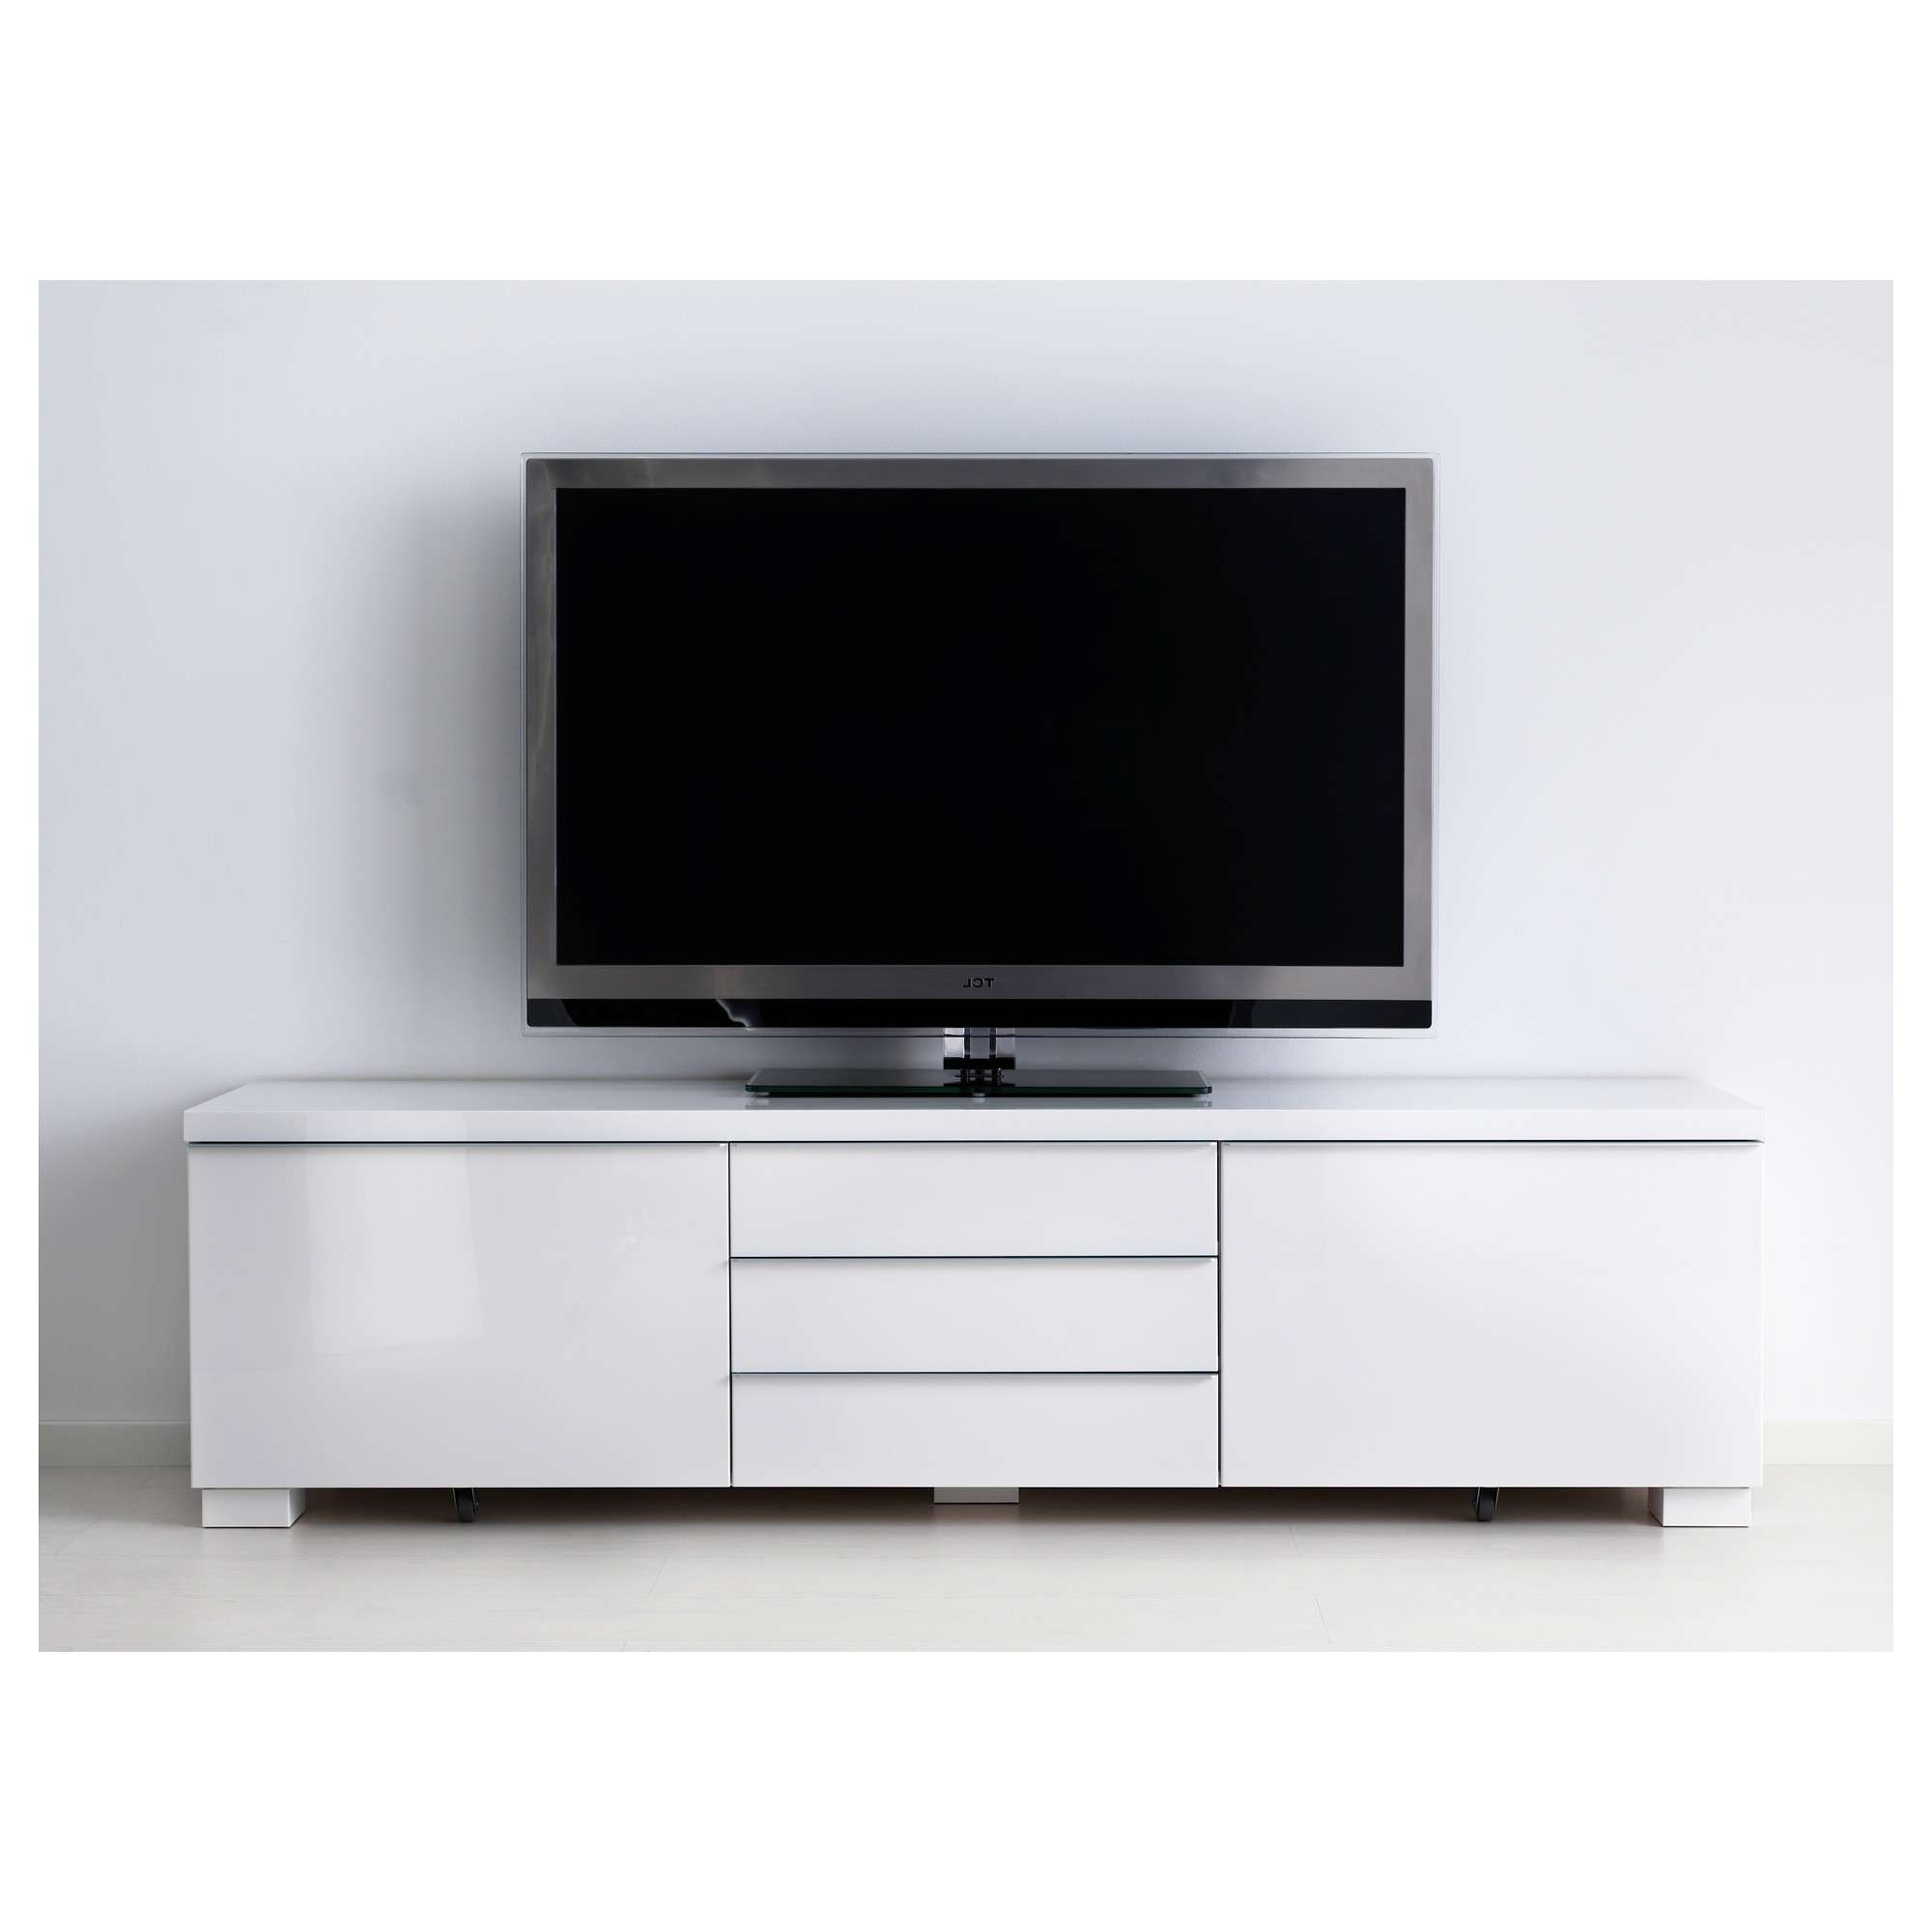 Simple Design White Tv Cabinet Bestå Burs Tv Unit Ikea – Cabinets With Regard To White Gloss Tv Stands With Drawers (View 12 of 15)